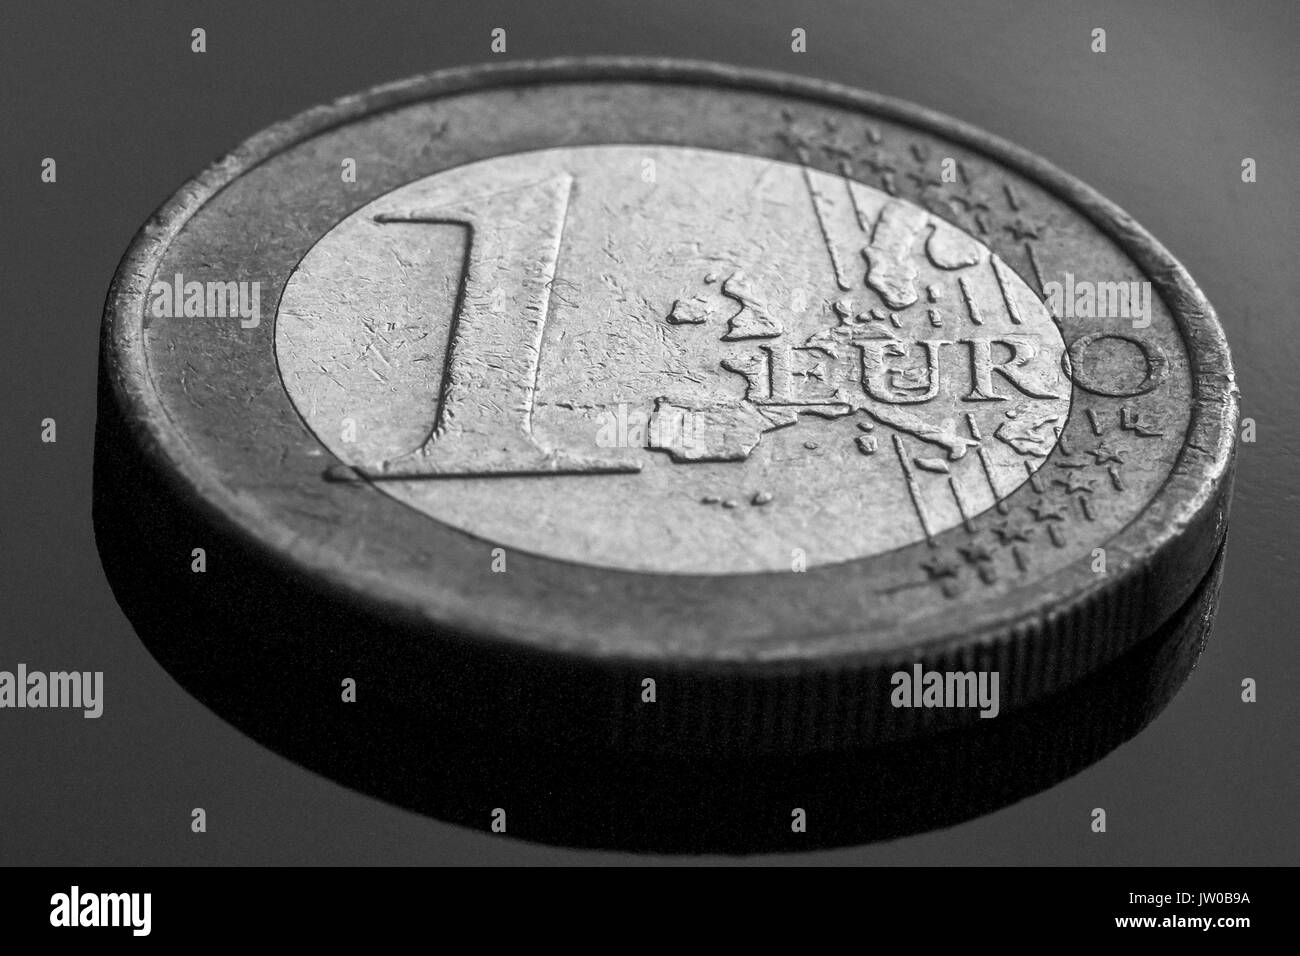 One euro coin close uo view, black background, black and white conversion - Stock Image